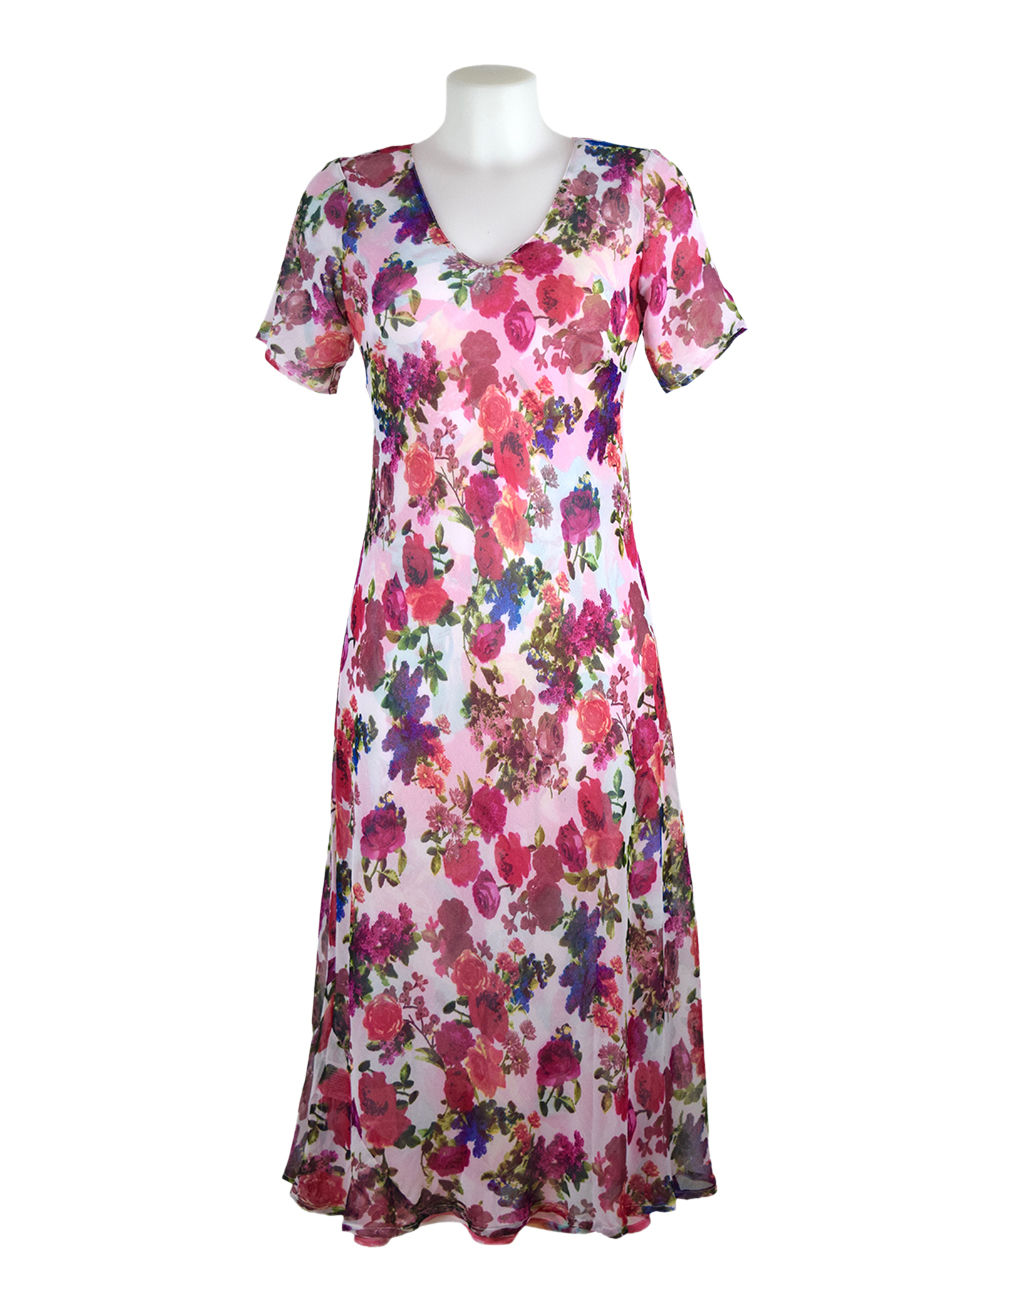 Paramour Reversible 2 in 1 Short Sleeve Dress Pink/Pink